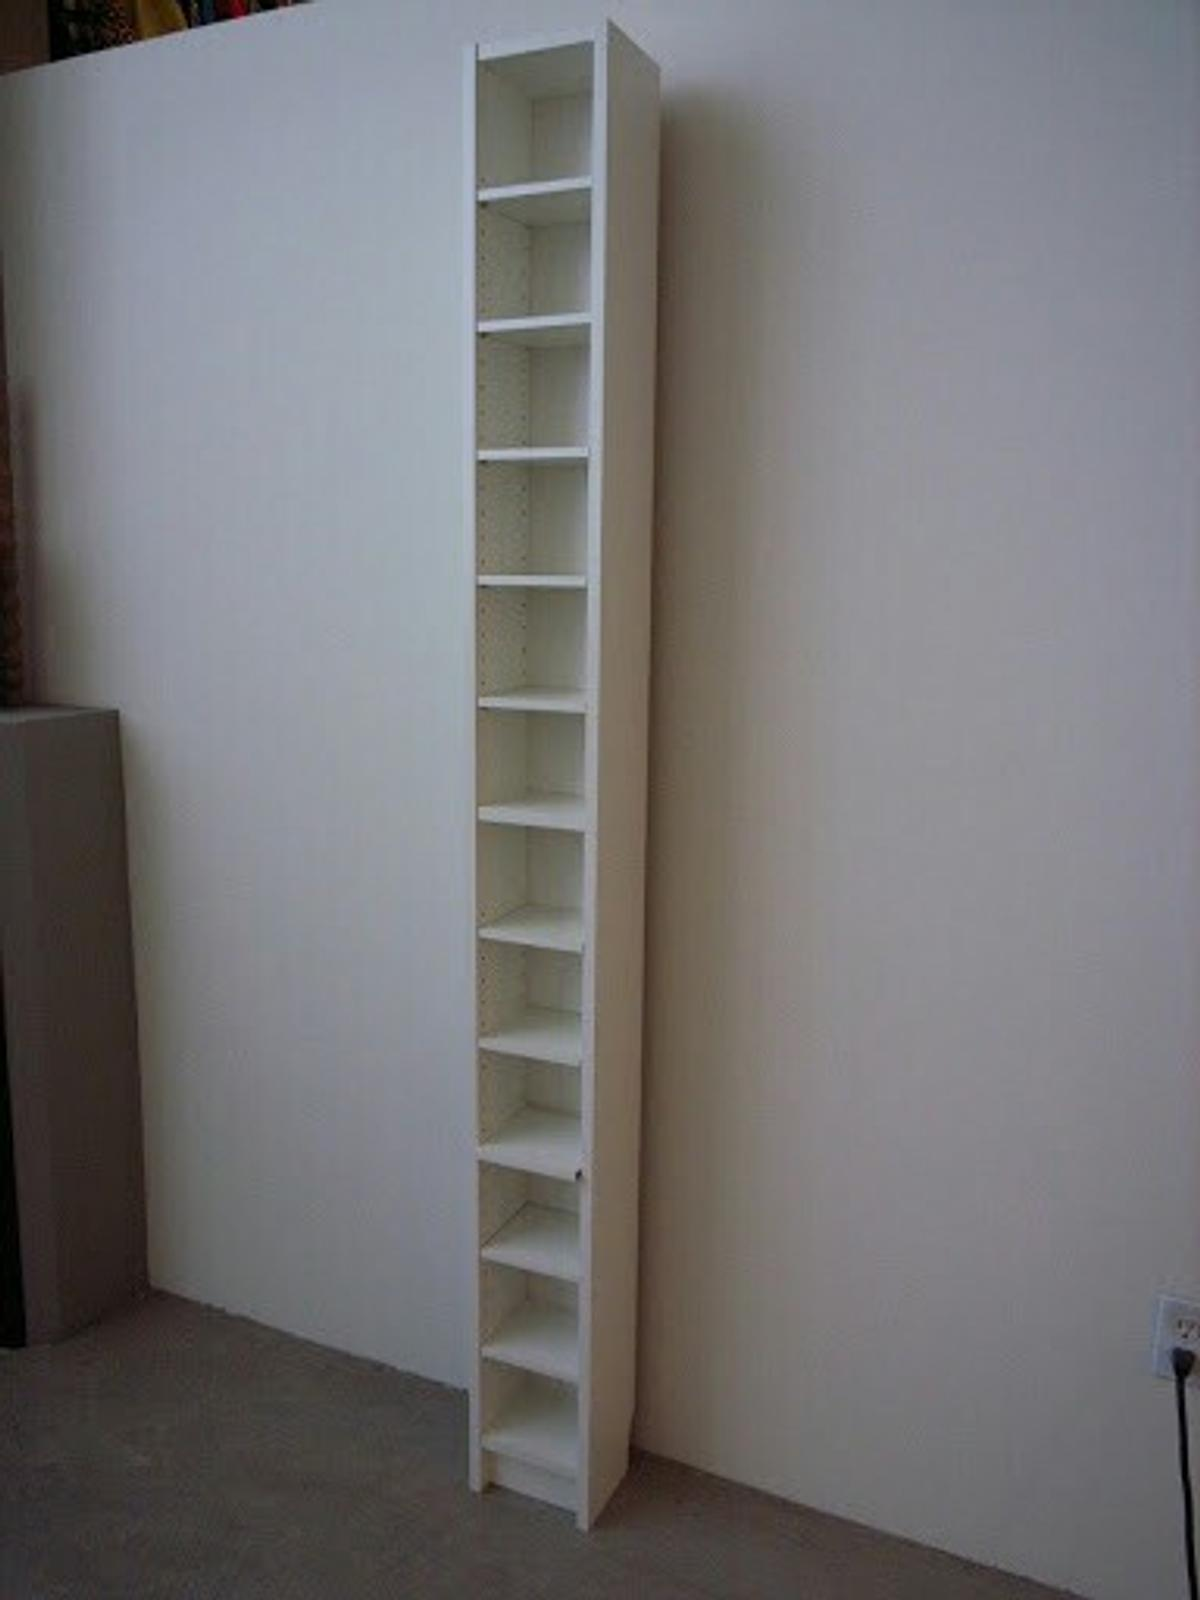 Ikea Gnedby Cd Dvd Rack White 6 Months Old In E16 London For 10 00 For Sale Shpock